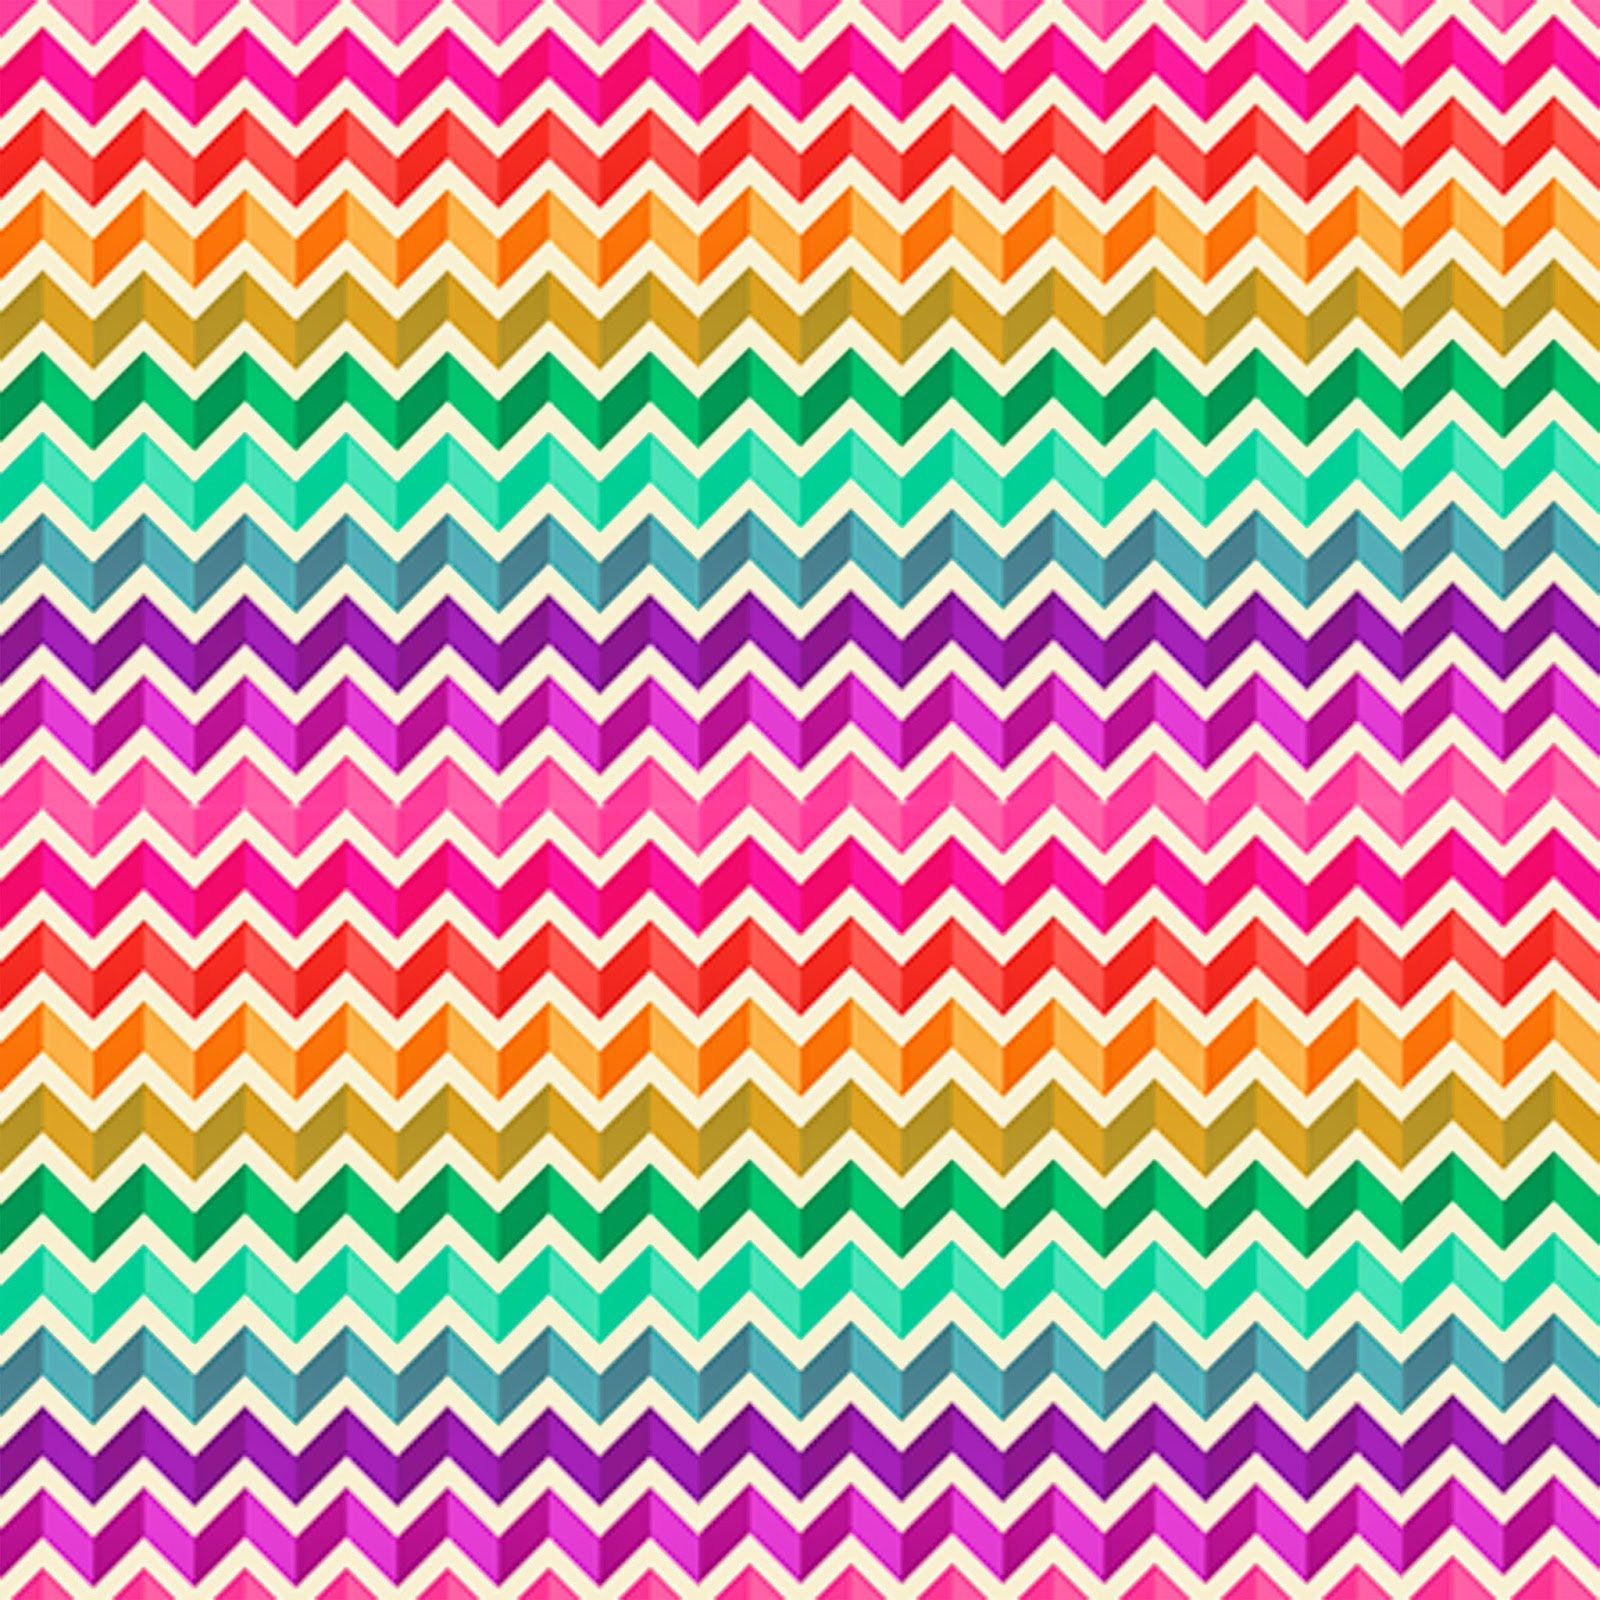 Cute Girly Pattern Wallpapers Doodlecraft 8 Colorful Block Chevron Freebie Printable